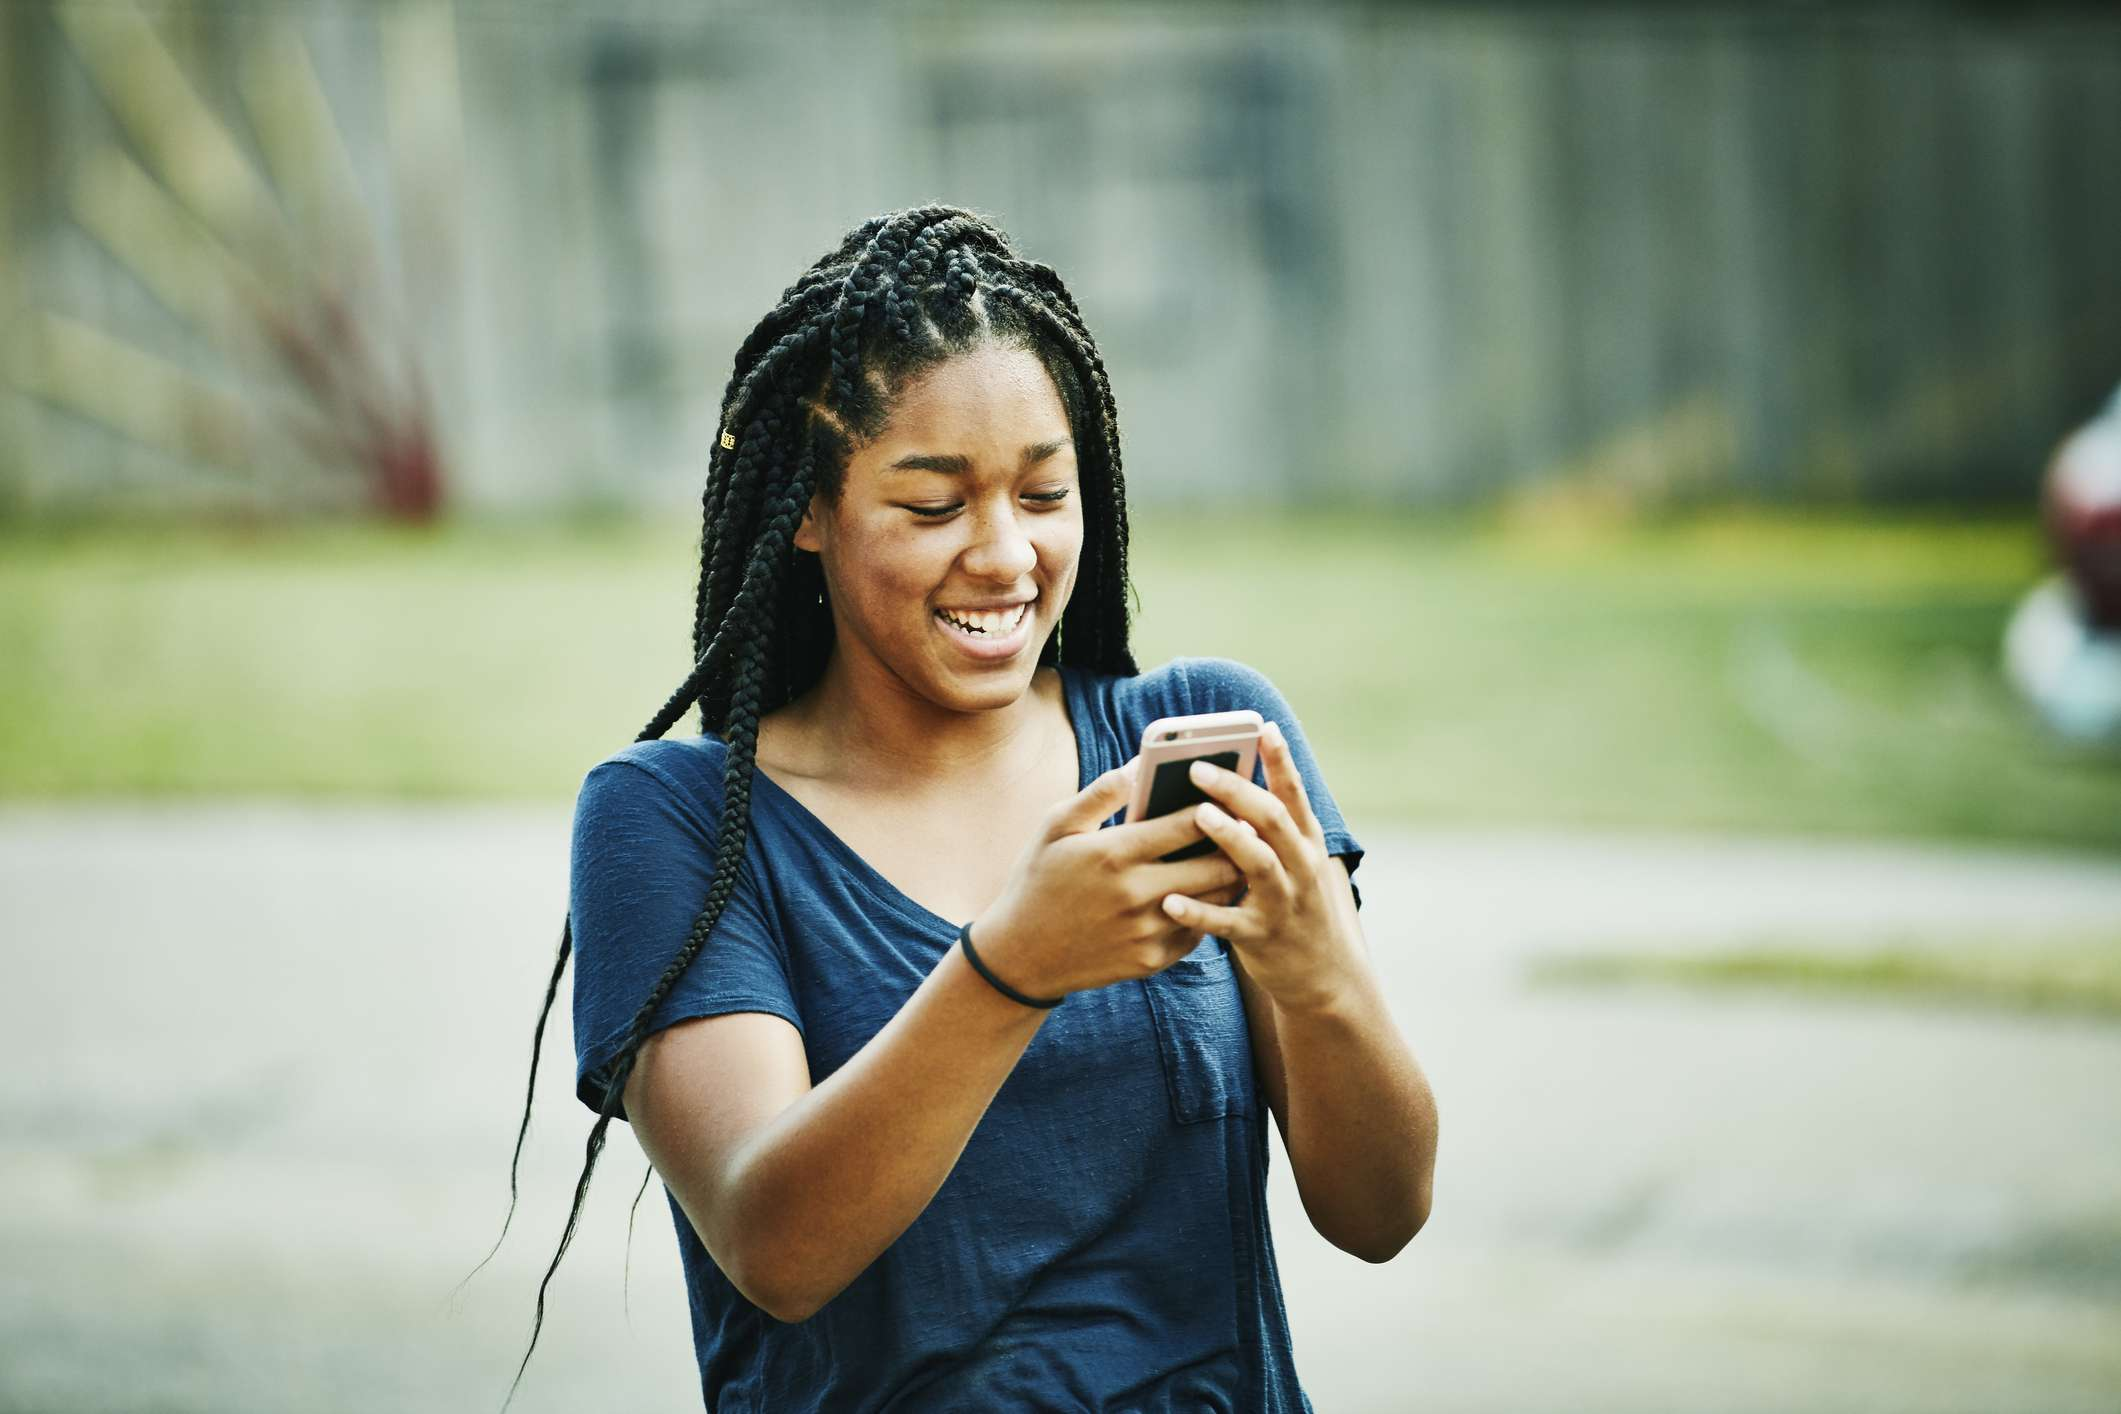 Teenager laughing smartphone